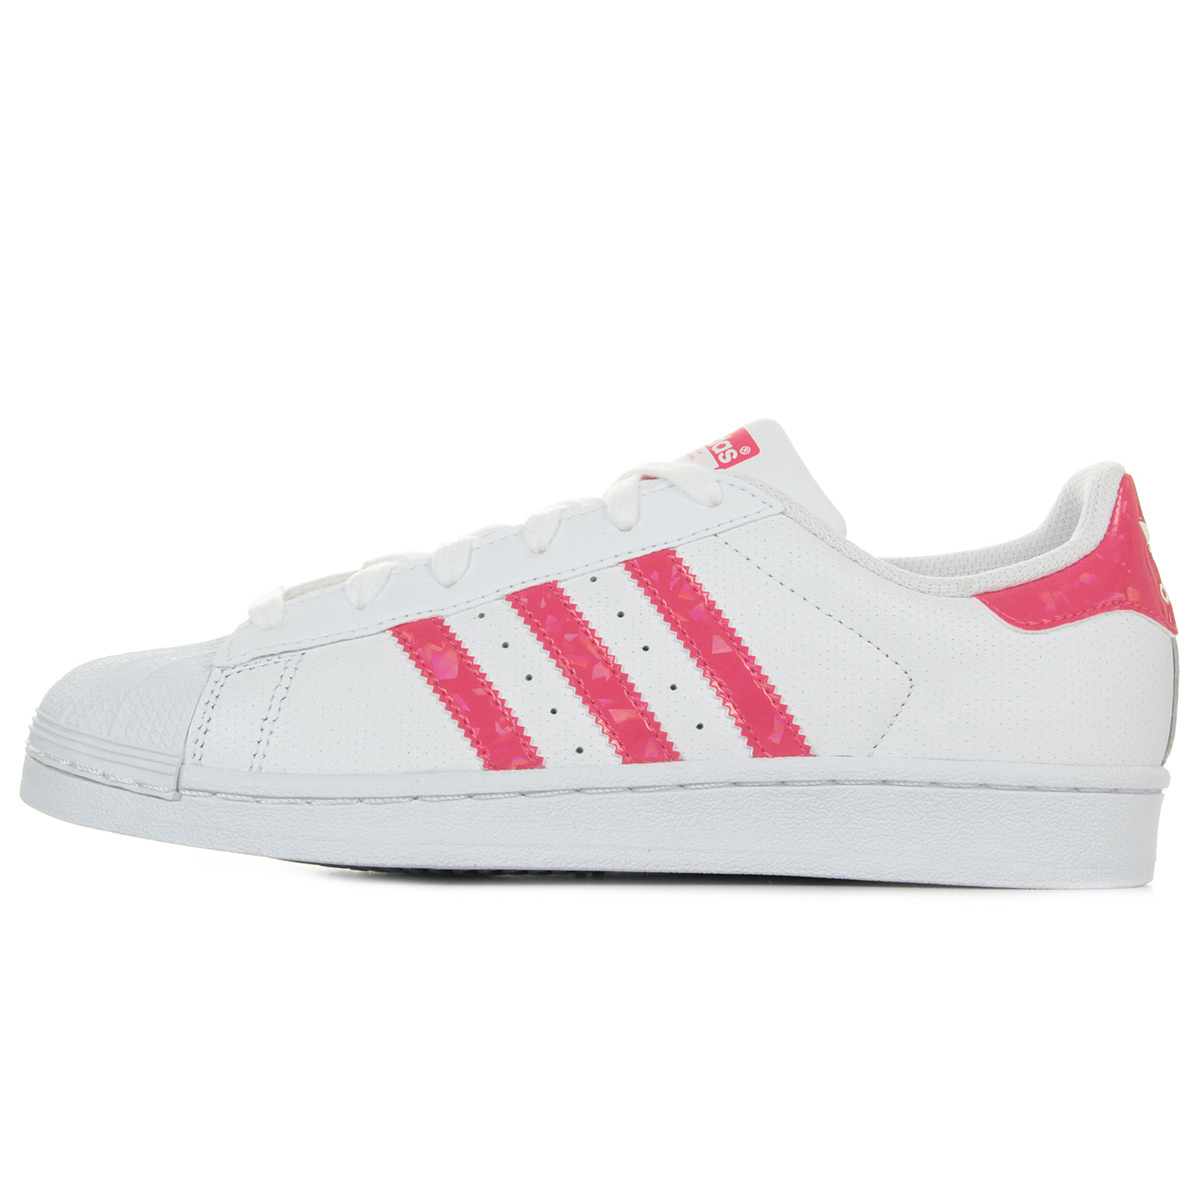 adidas Superstar DB1210, Baskets mode femme